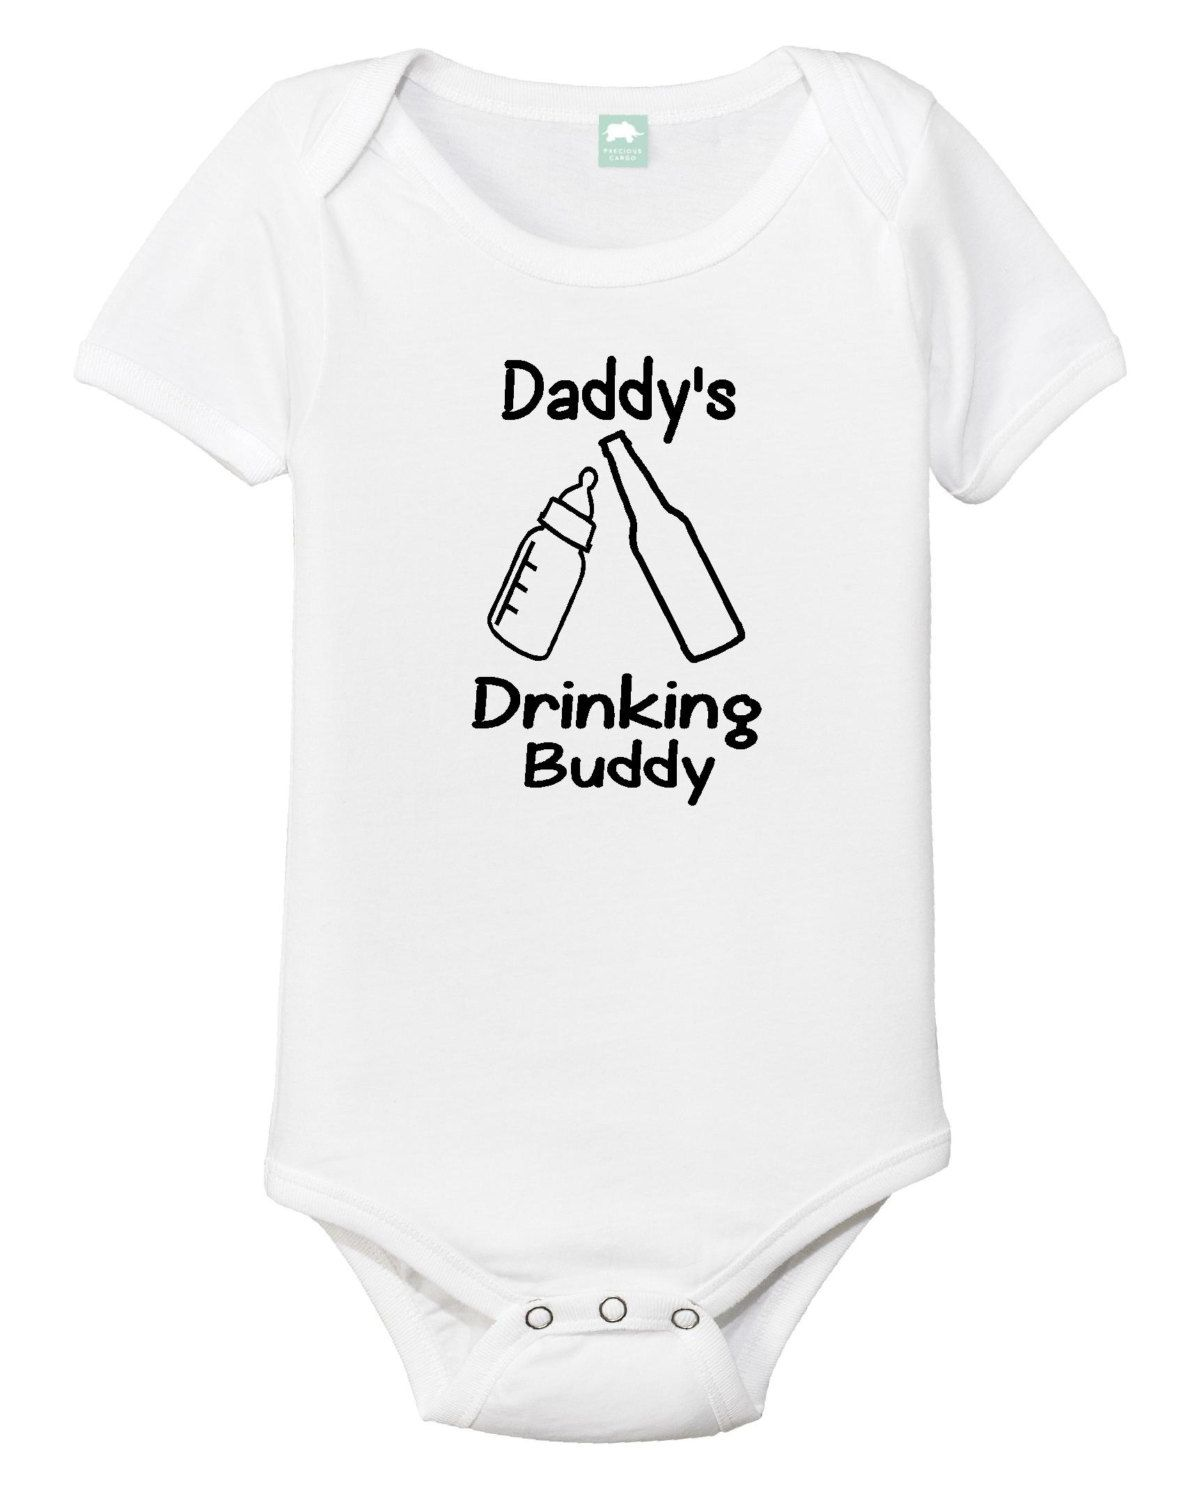 Image result for daddy's maybe onesie